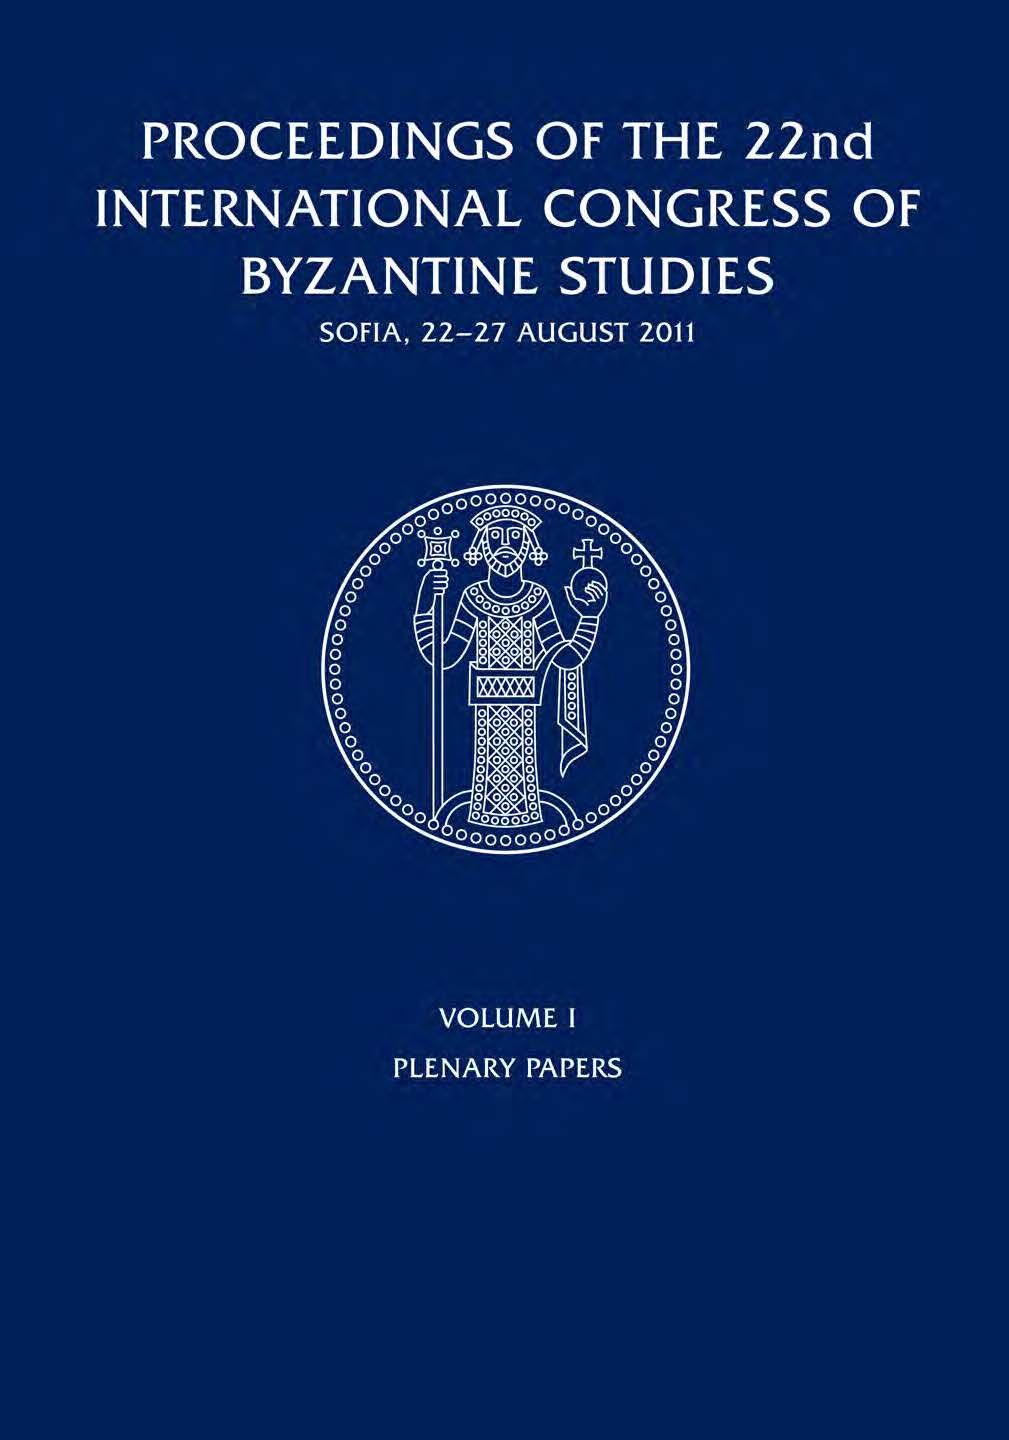 Proceedings of the 22nd International Congress of Byzantine Studies. Sofia, 22–27 August 2011. Volume I, Plenary Papers Cover Image